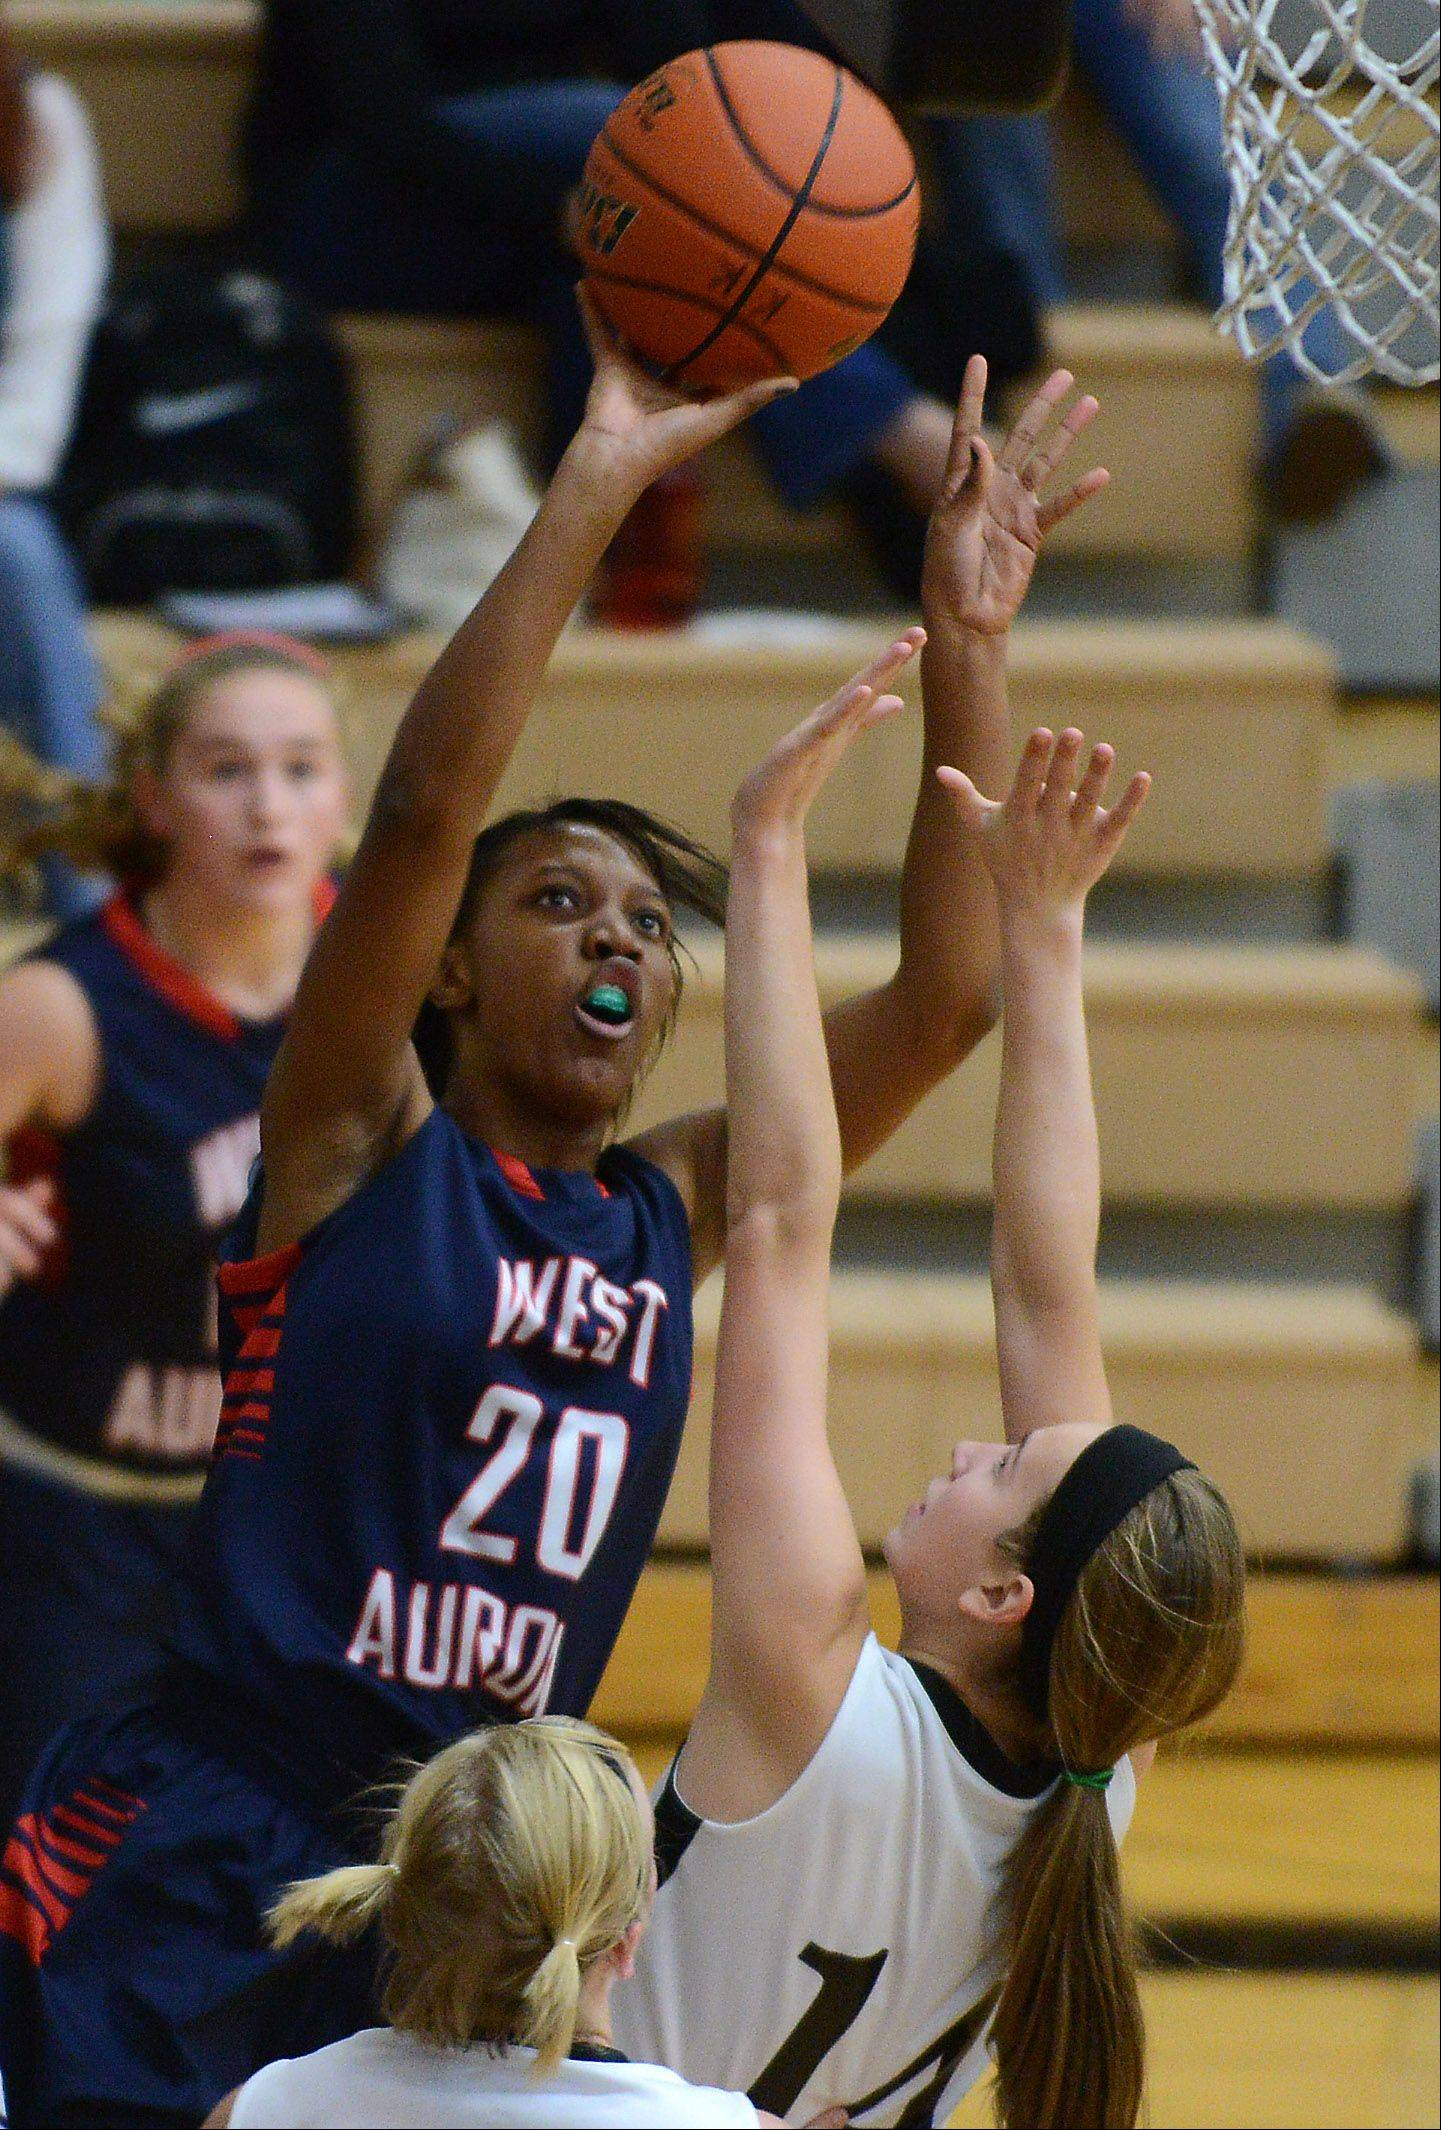 West Aurora's Joslyn Noel (20) shoots over Kaneland's Vanessa Gould (14) during Thursday's game in Maple Park.